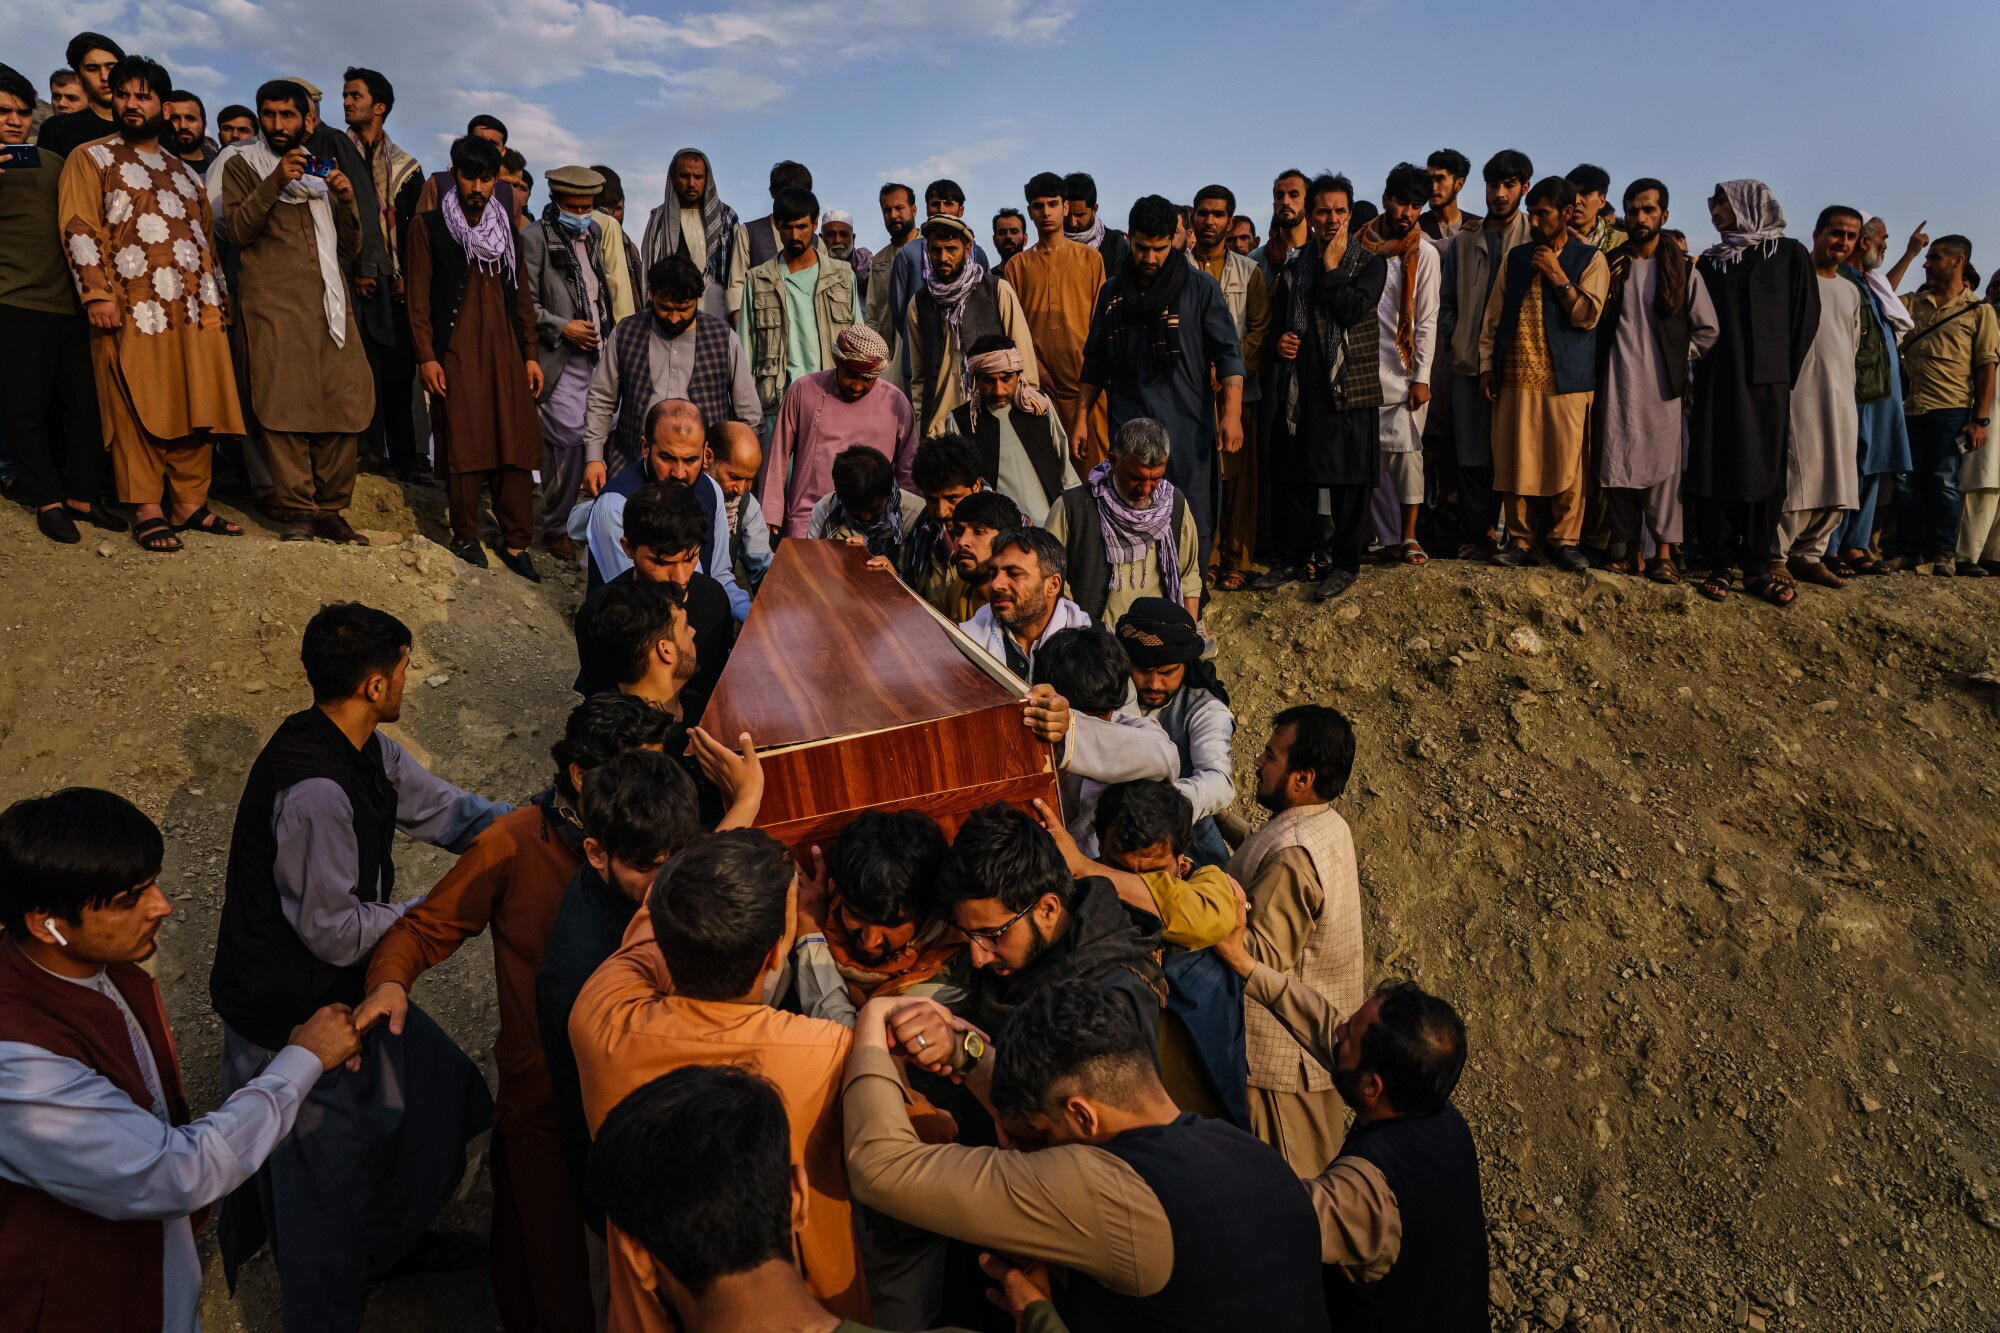 Caskets for the dead are carried toward the gravesite as relatives and friends attend a mass funeral for members of a family.